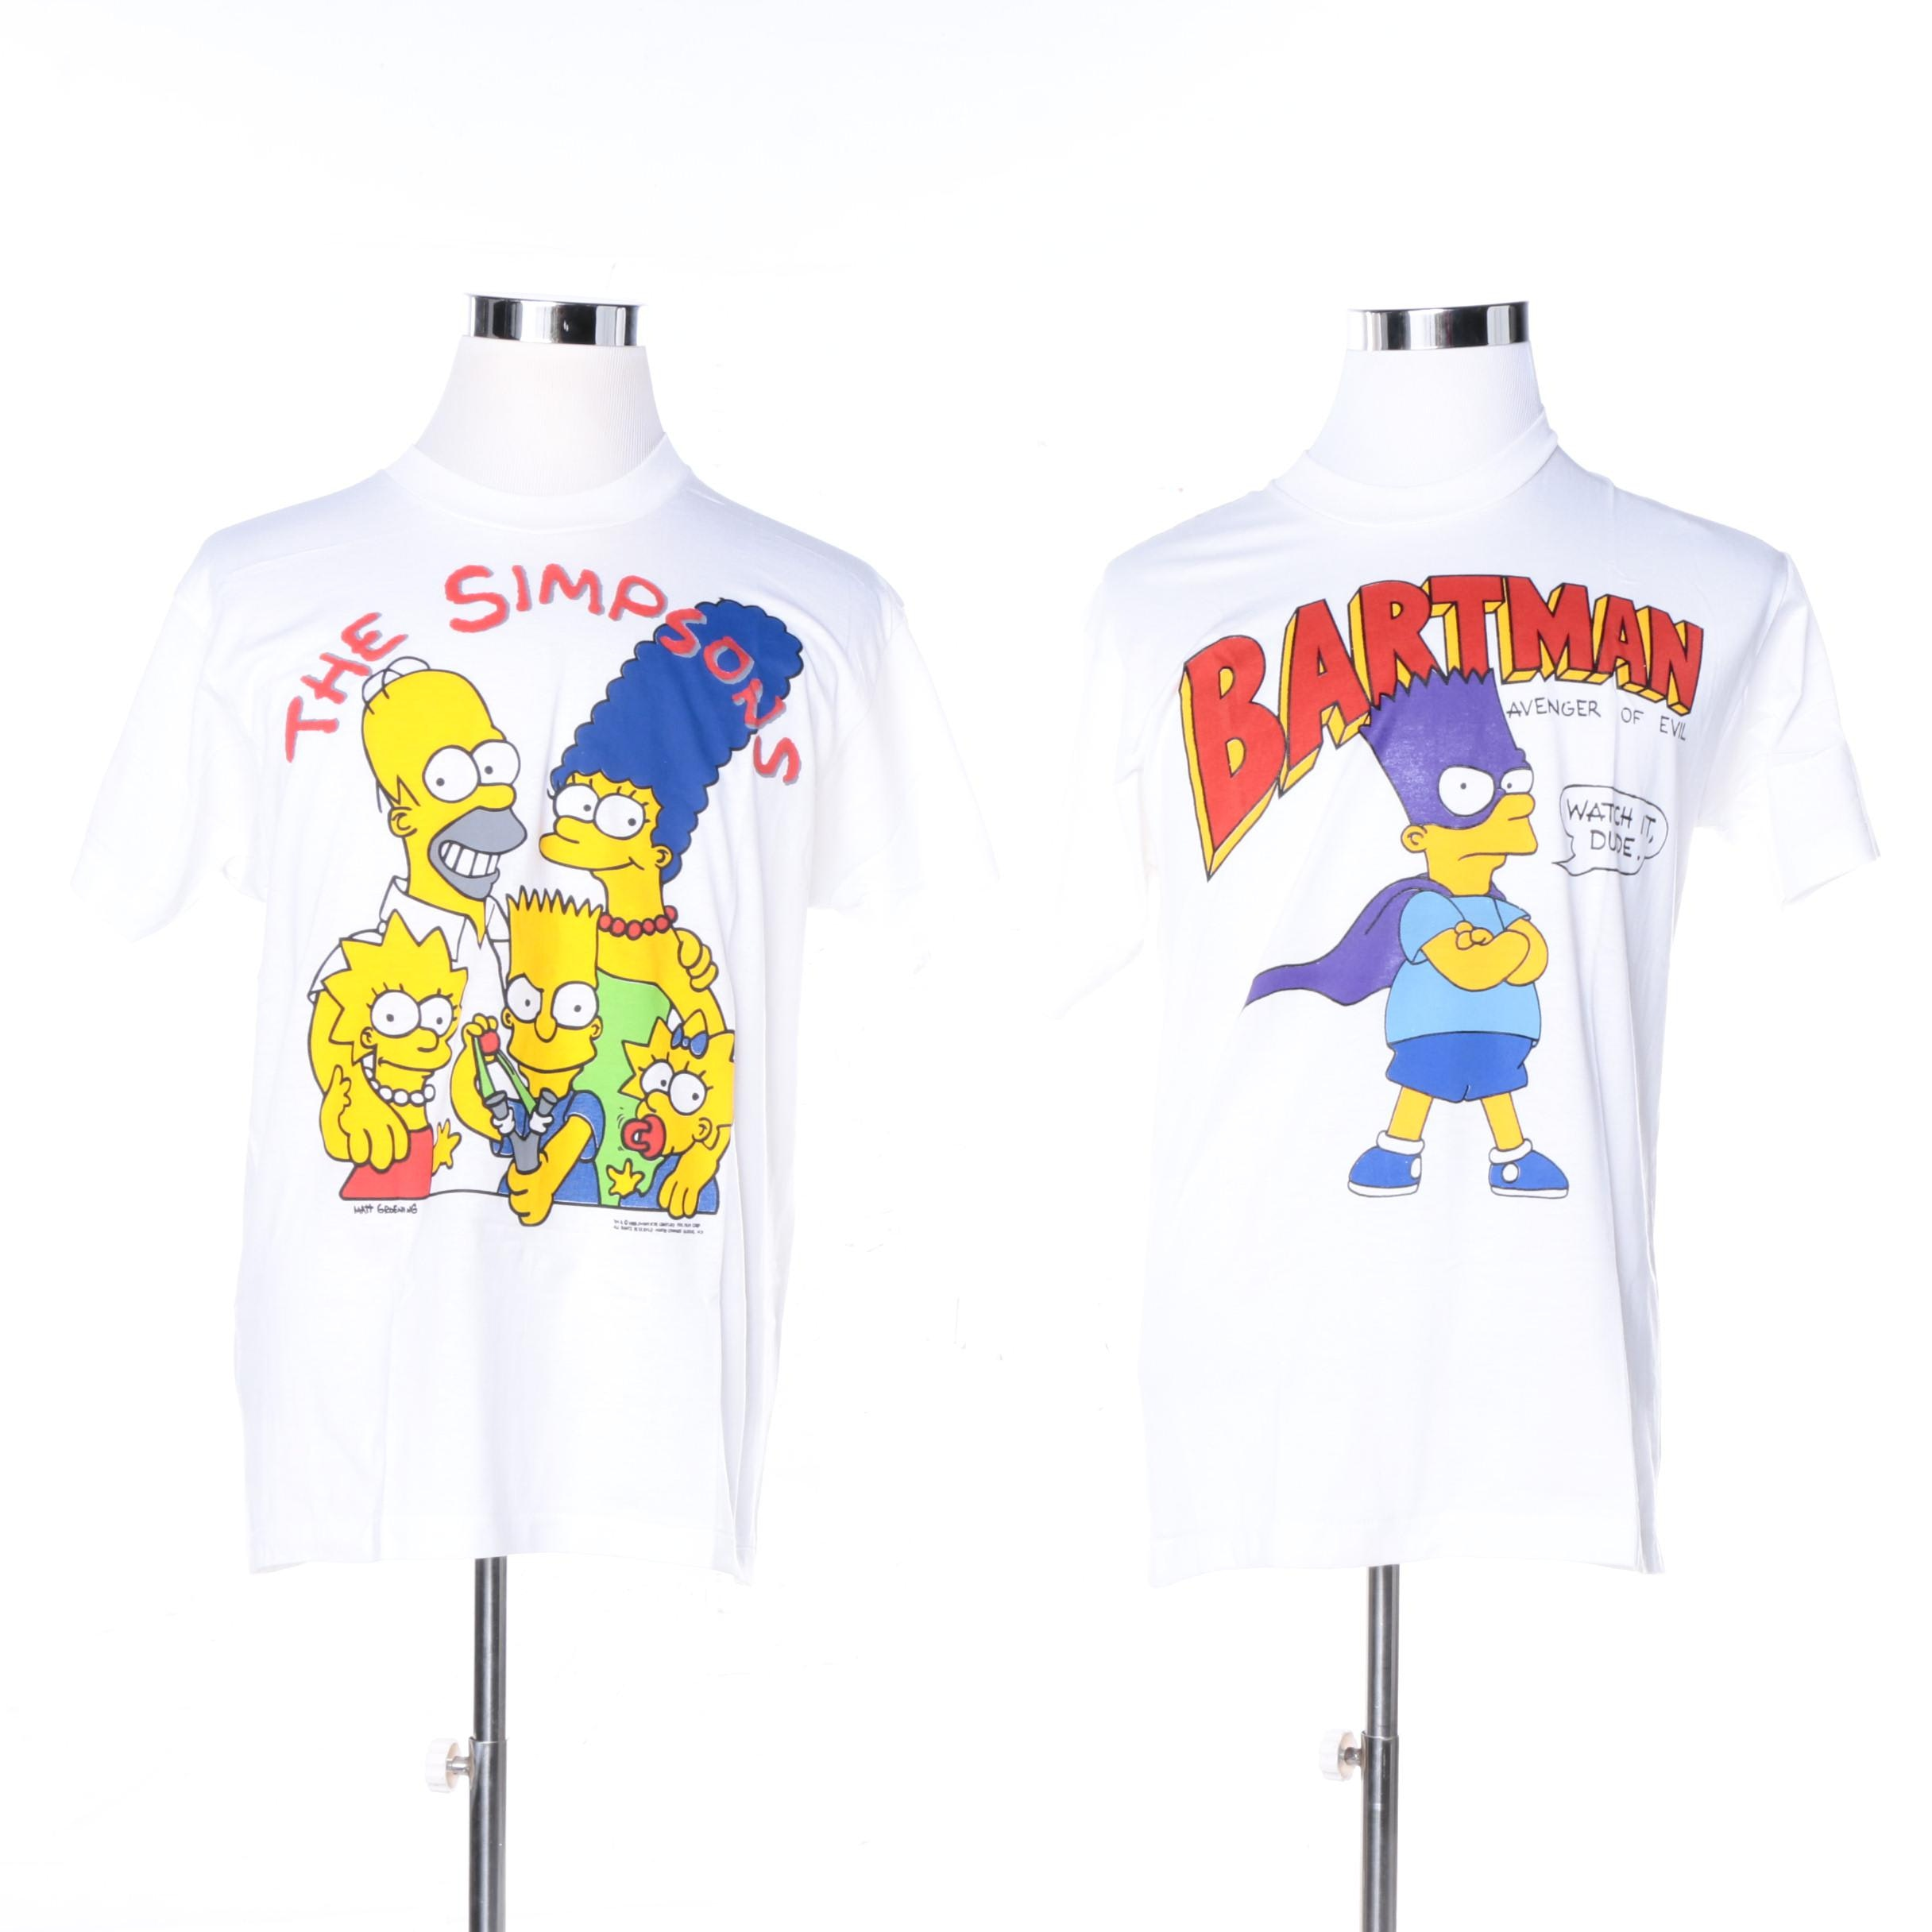 """The Simpsons"" Novelty T-Shirts"